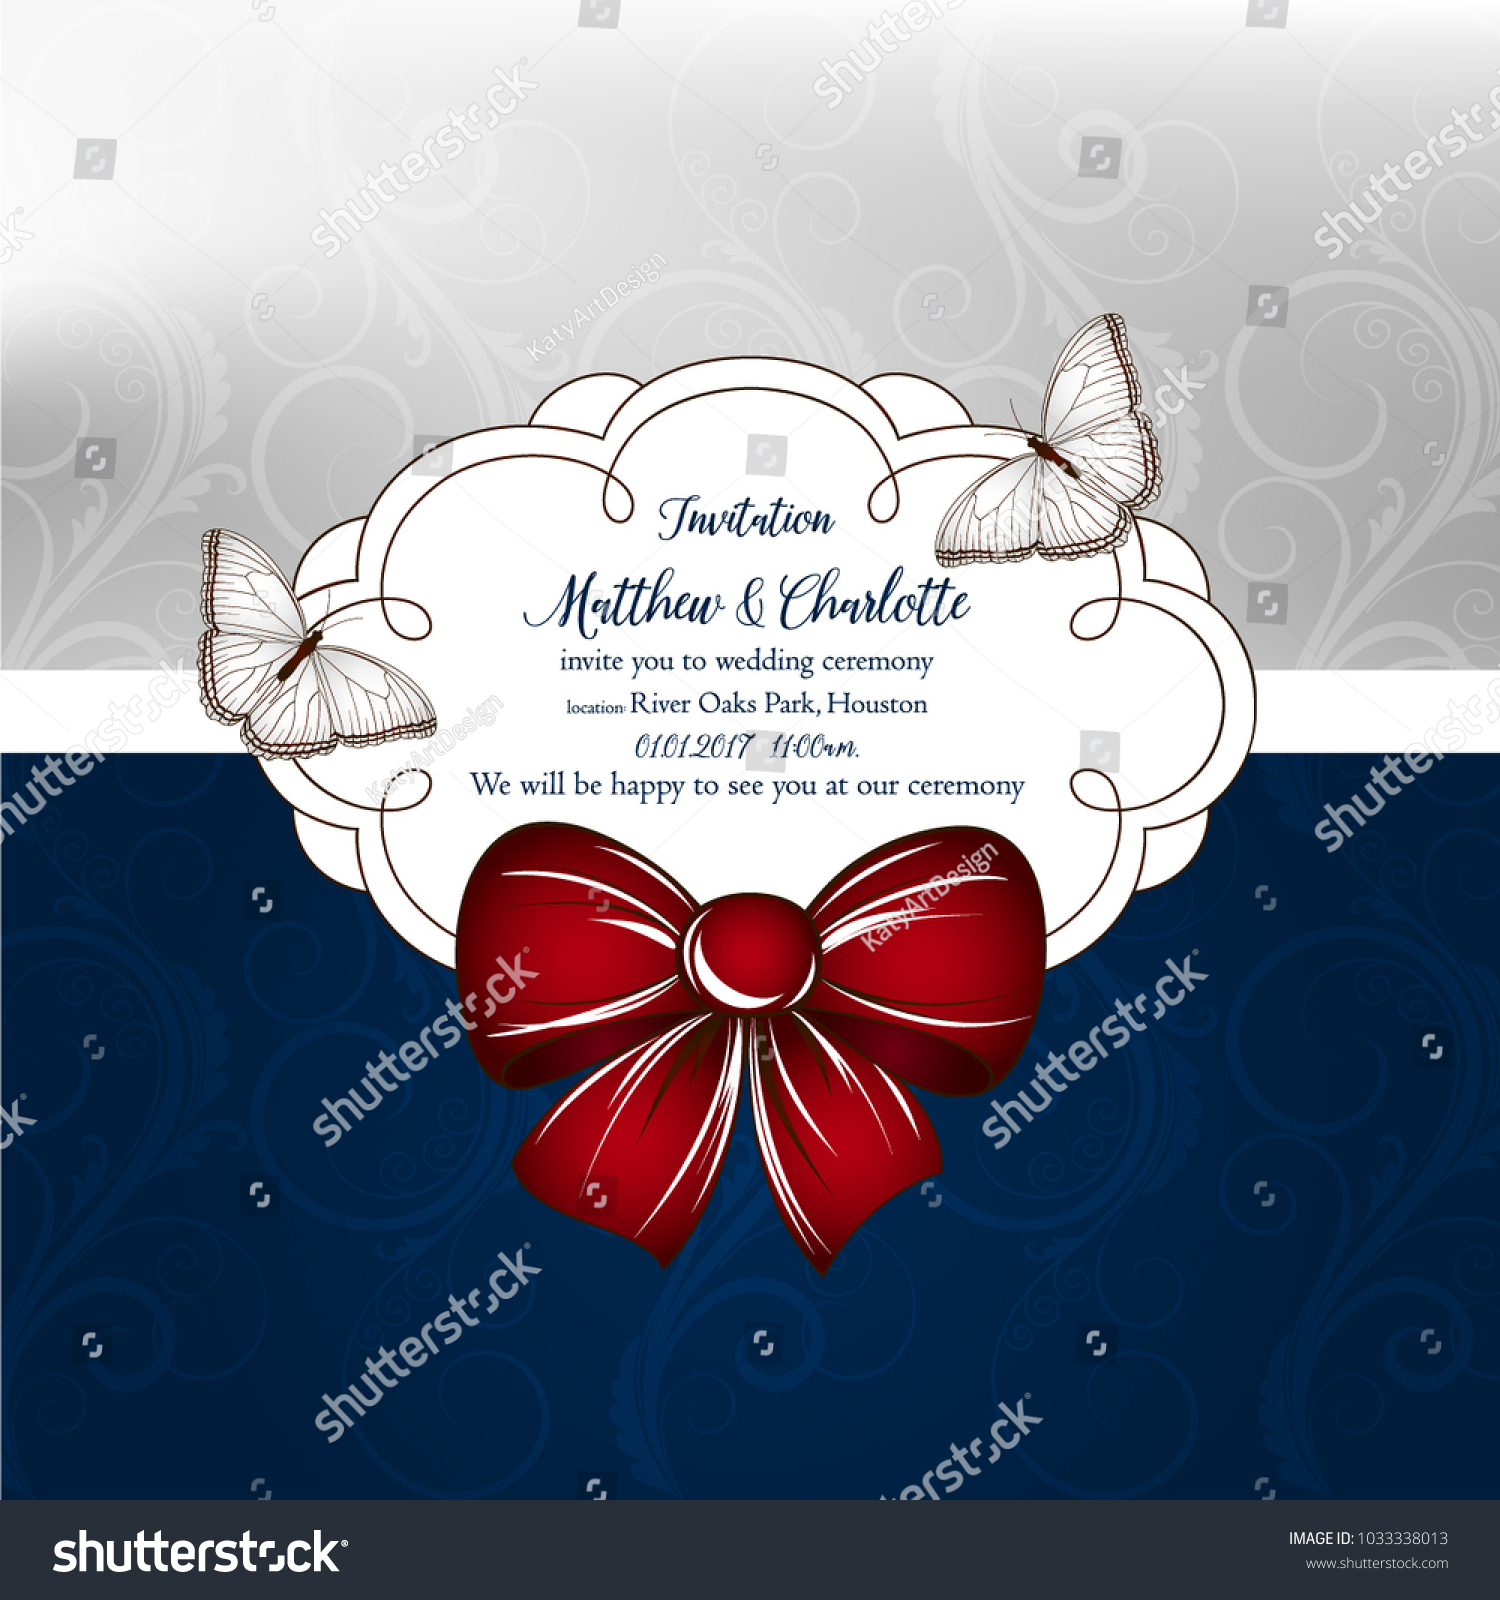 Cute Wedding Invitation Floral Curls Bow Stock Vector (Royalty Free ...